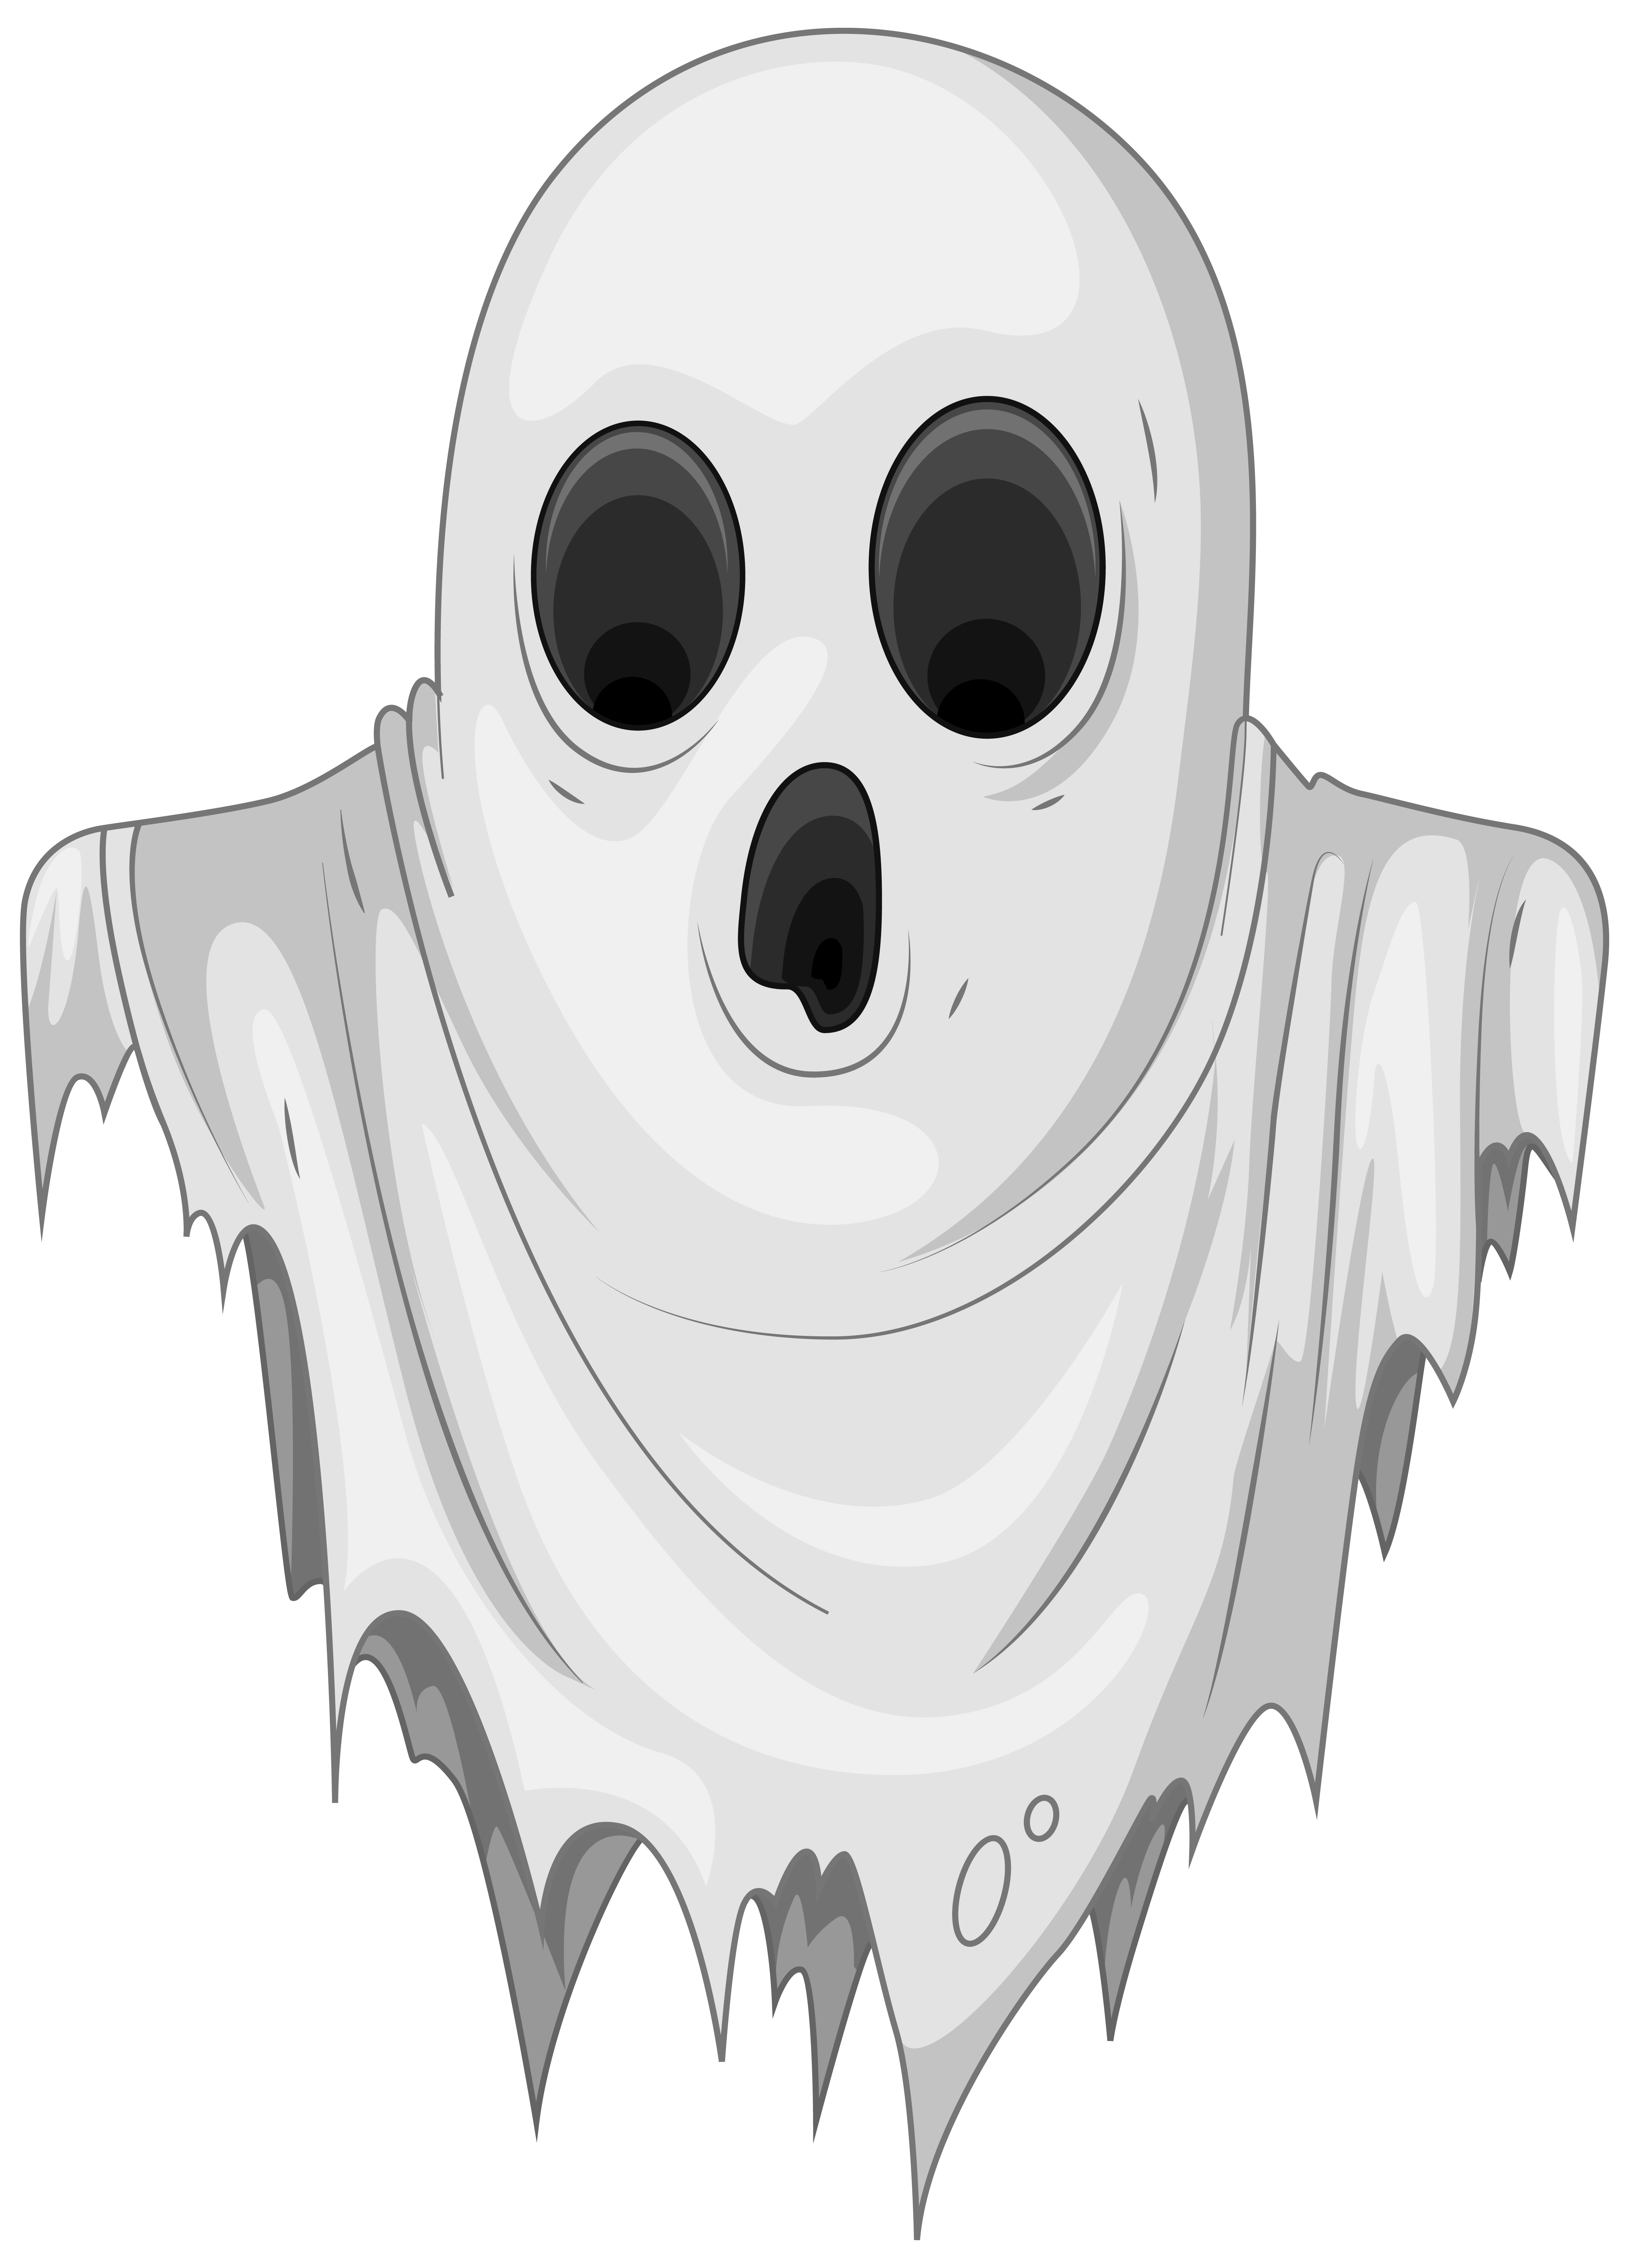 Haunted png image gallery. Clipart ghost clipart clear background